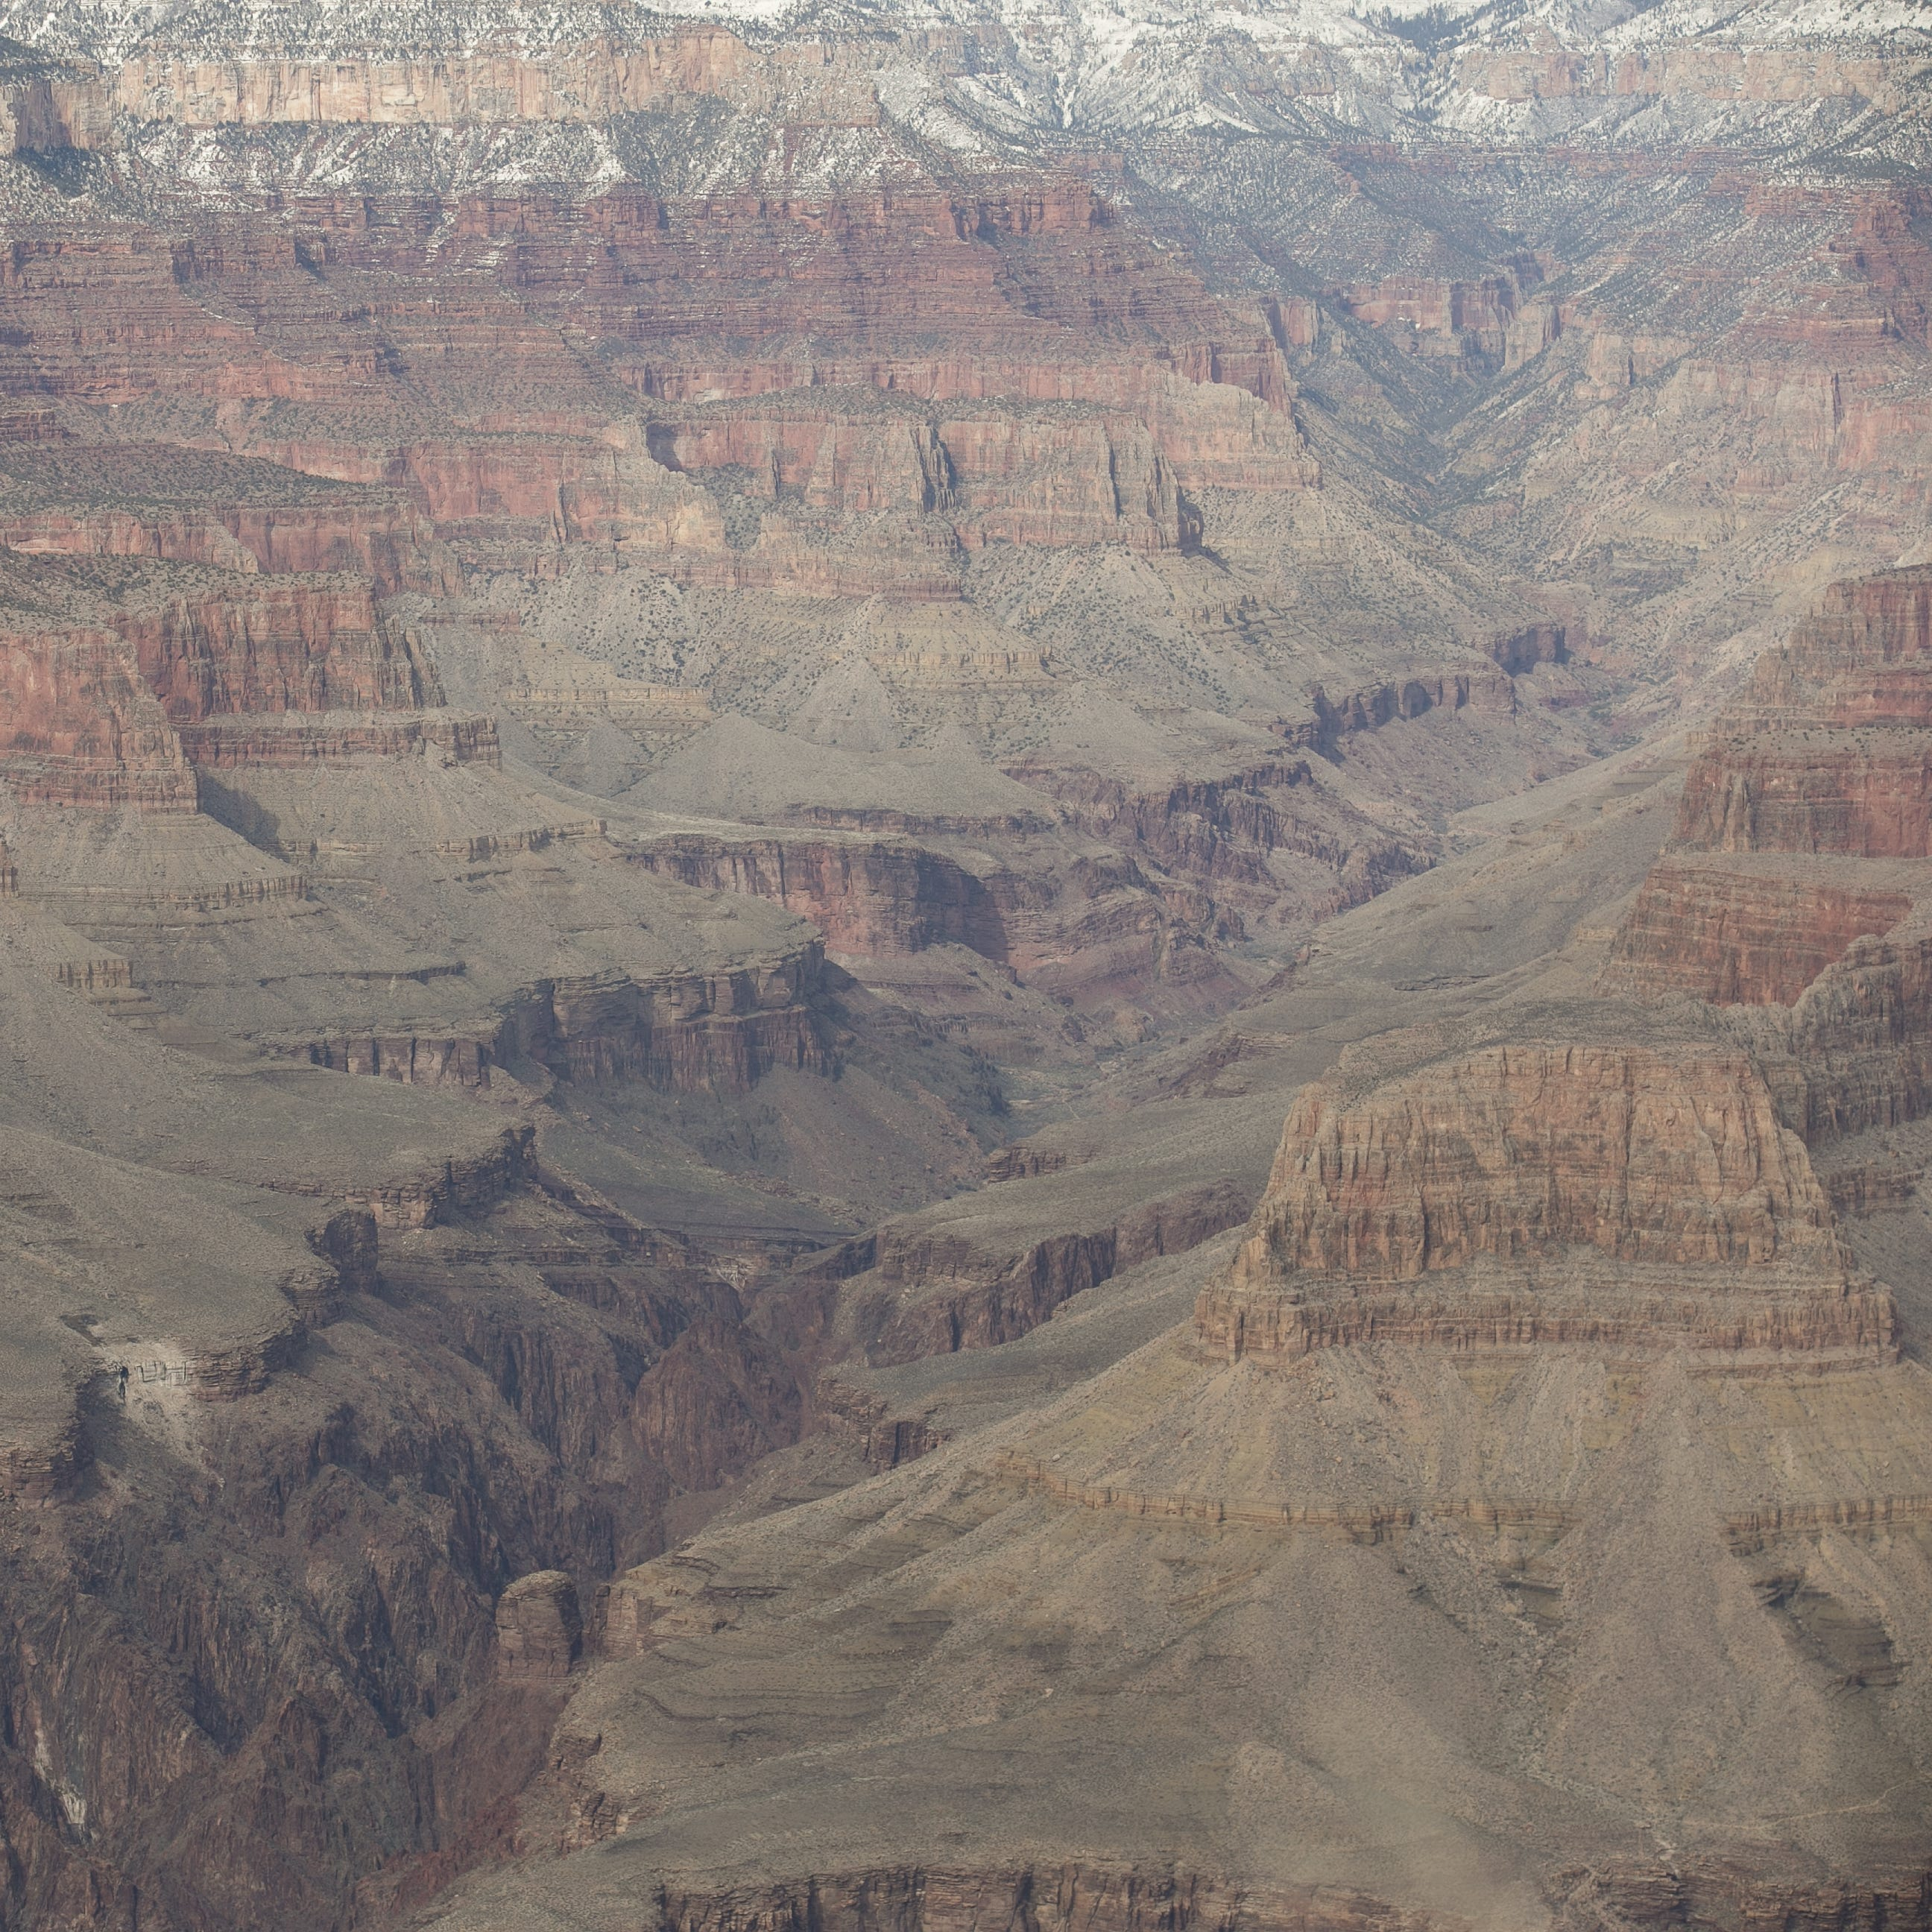 A fourth person to die at Grand Canyon this year has been identified